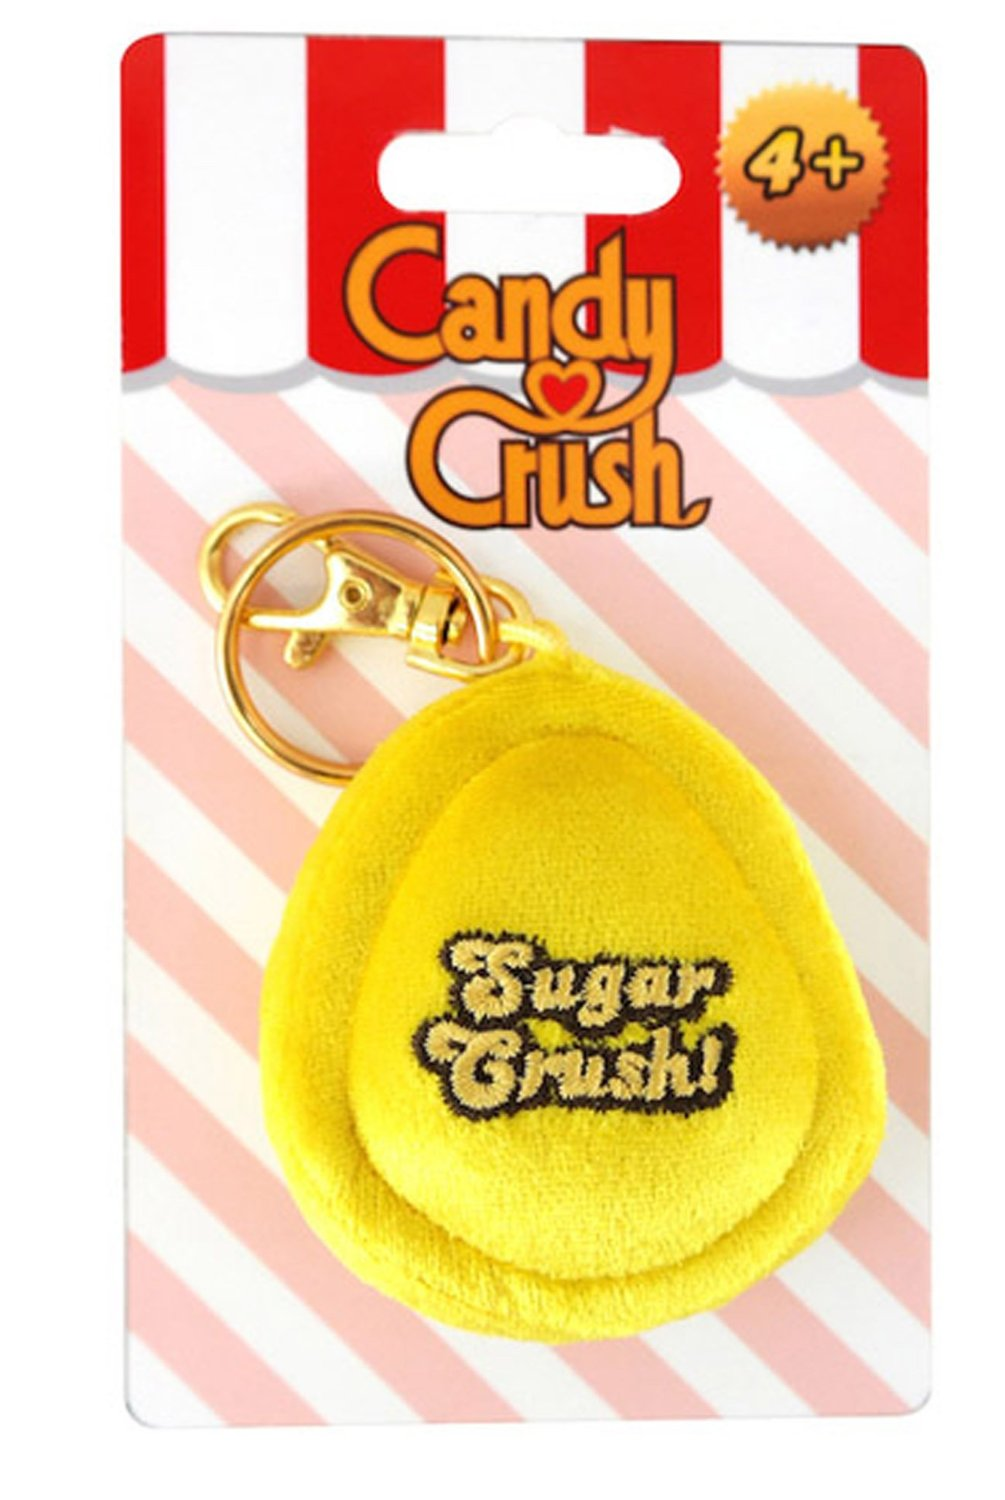 Porte-clés Candy Crush Saga